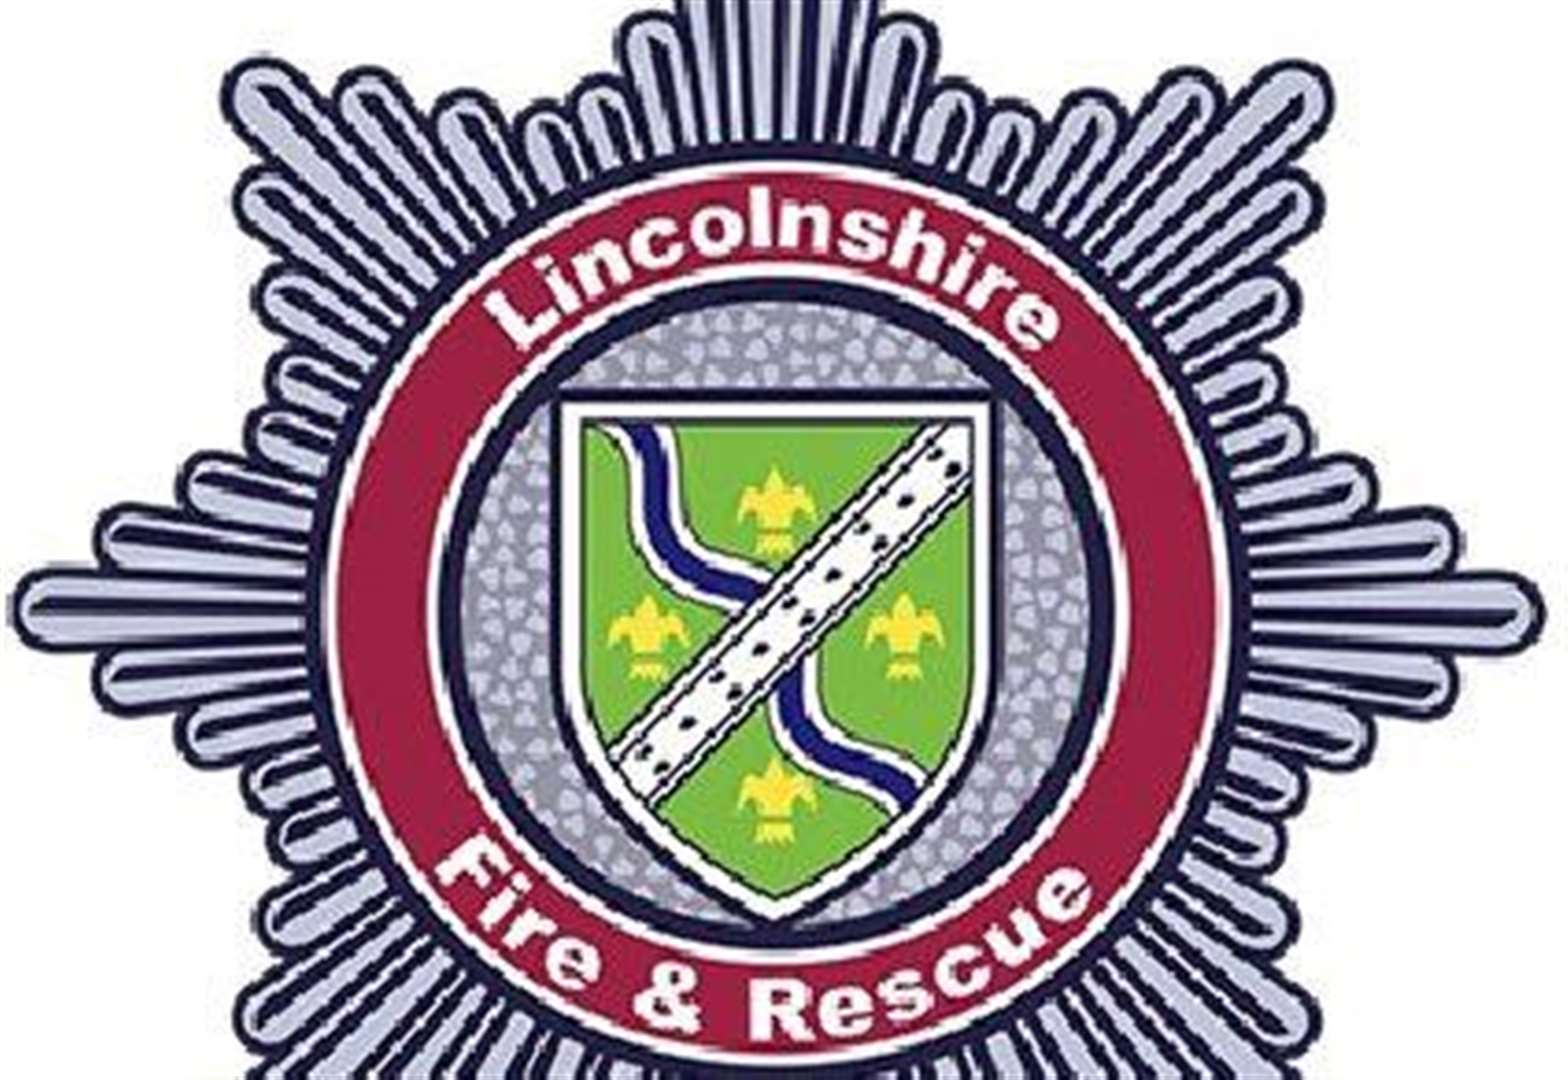 Car on fire in West Pinchbeck